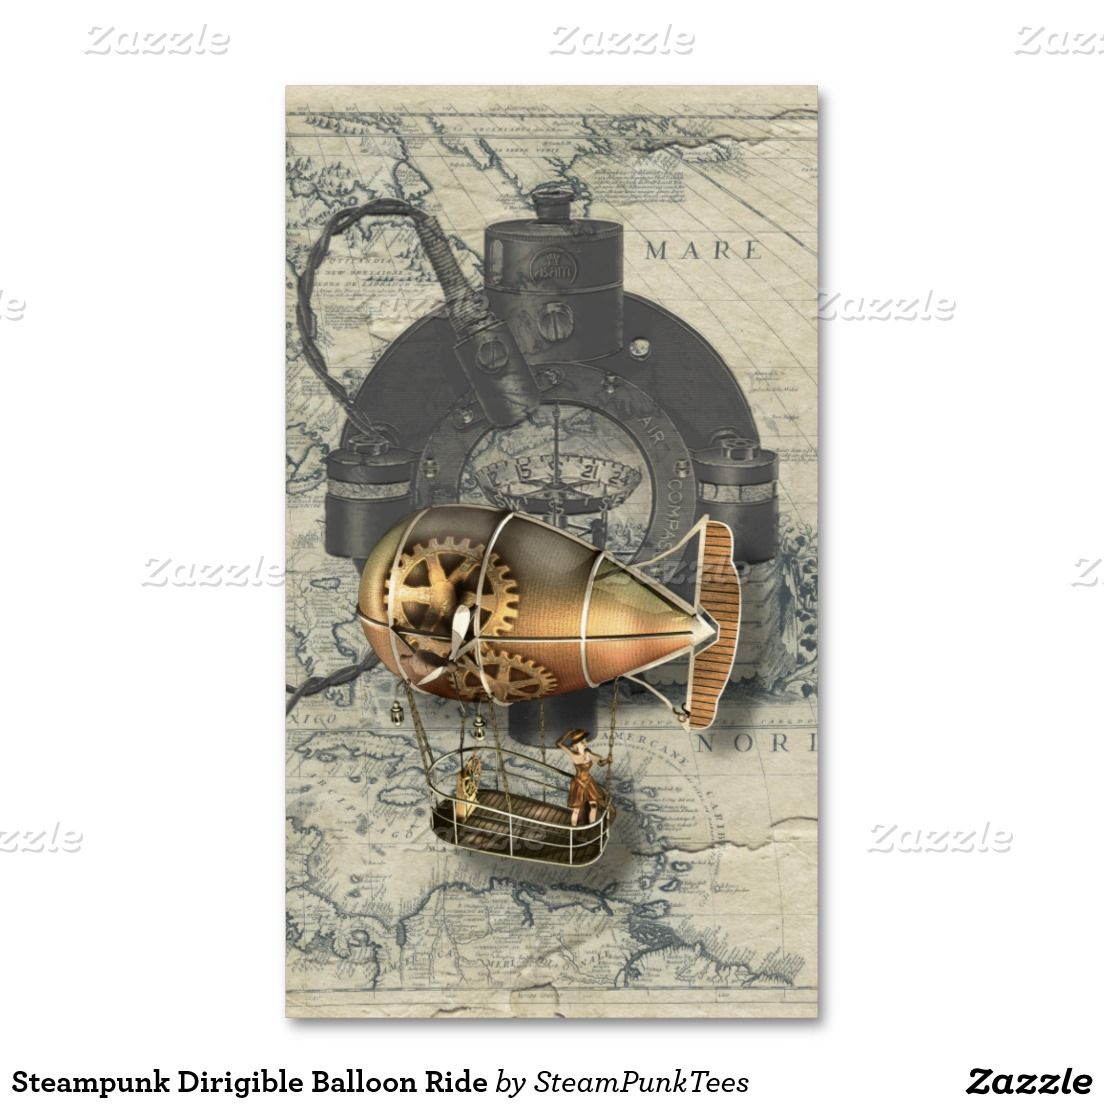 Steampunk Dirigible Balloon Ride | Business cards, Business and ...